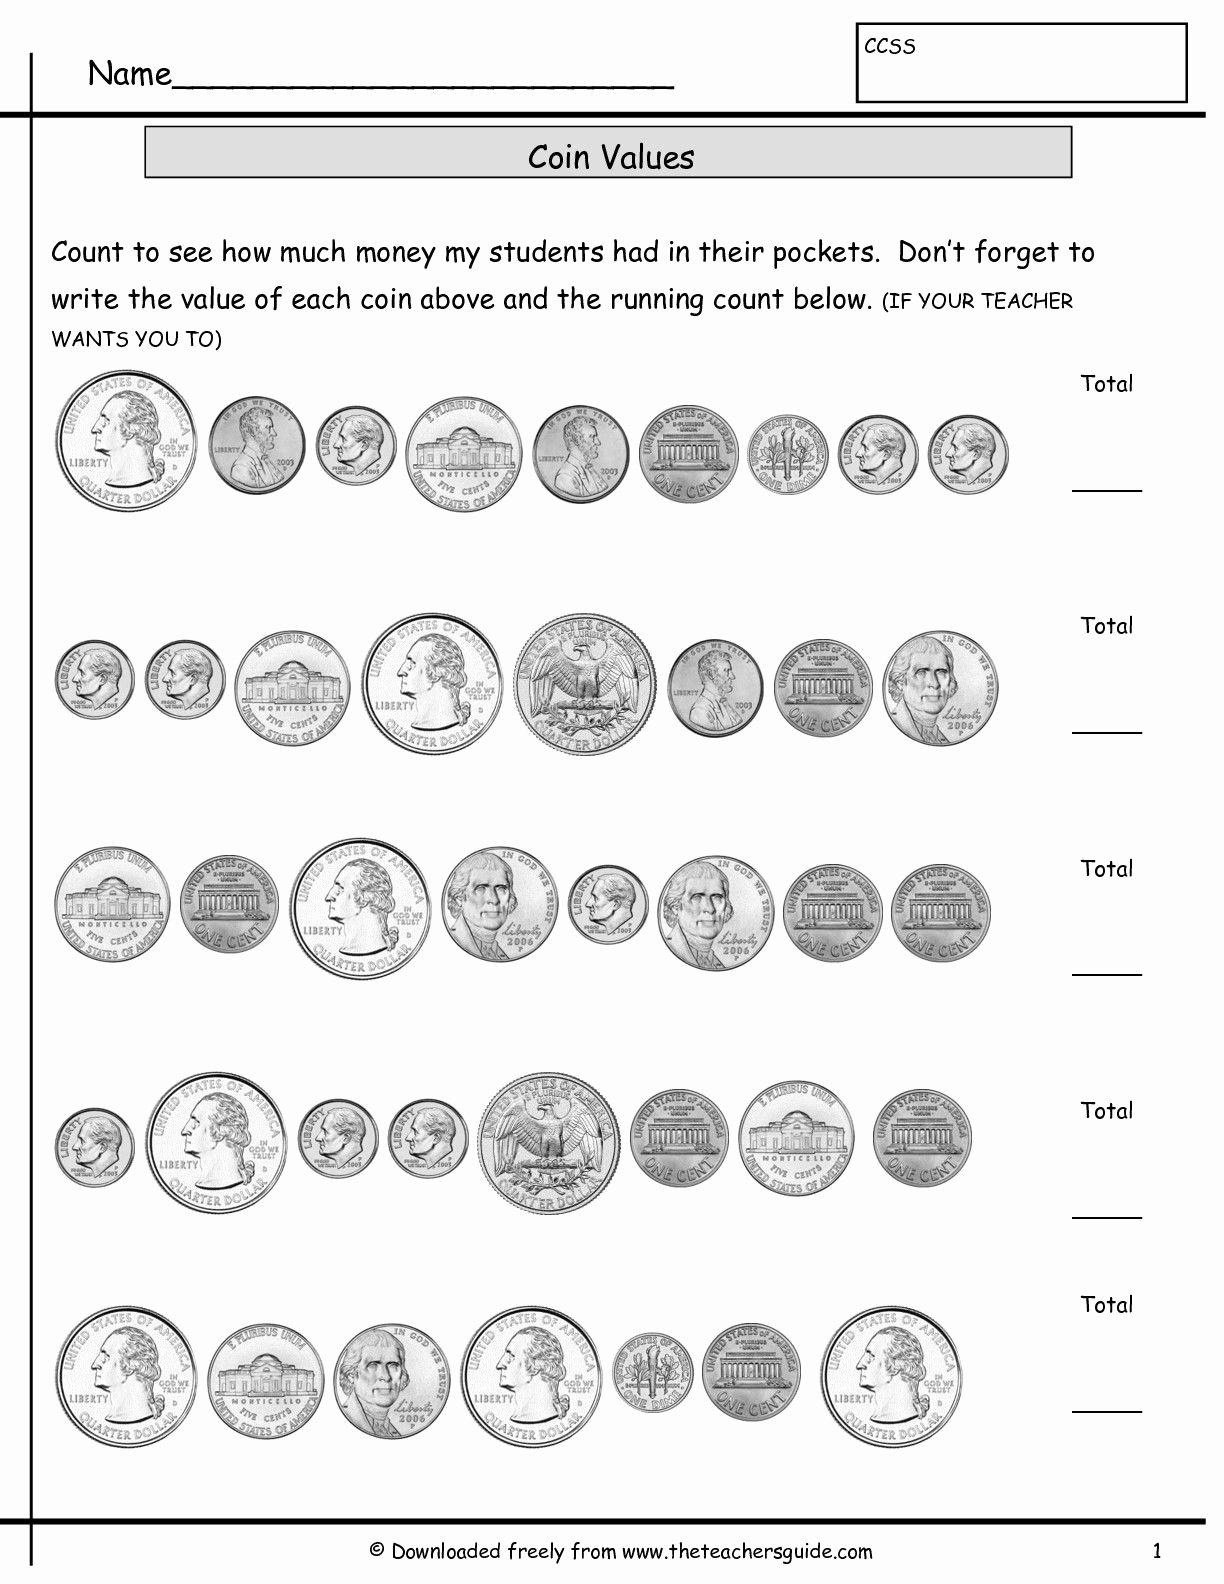 Counting Coins Worksheets First Grade Fresh Counting Coins Worksheets From the Teacher S Guide